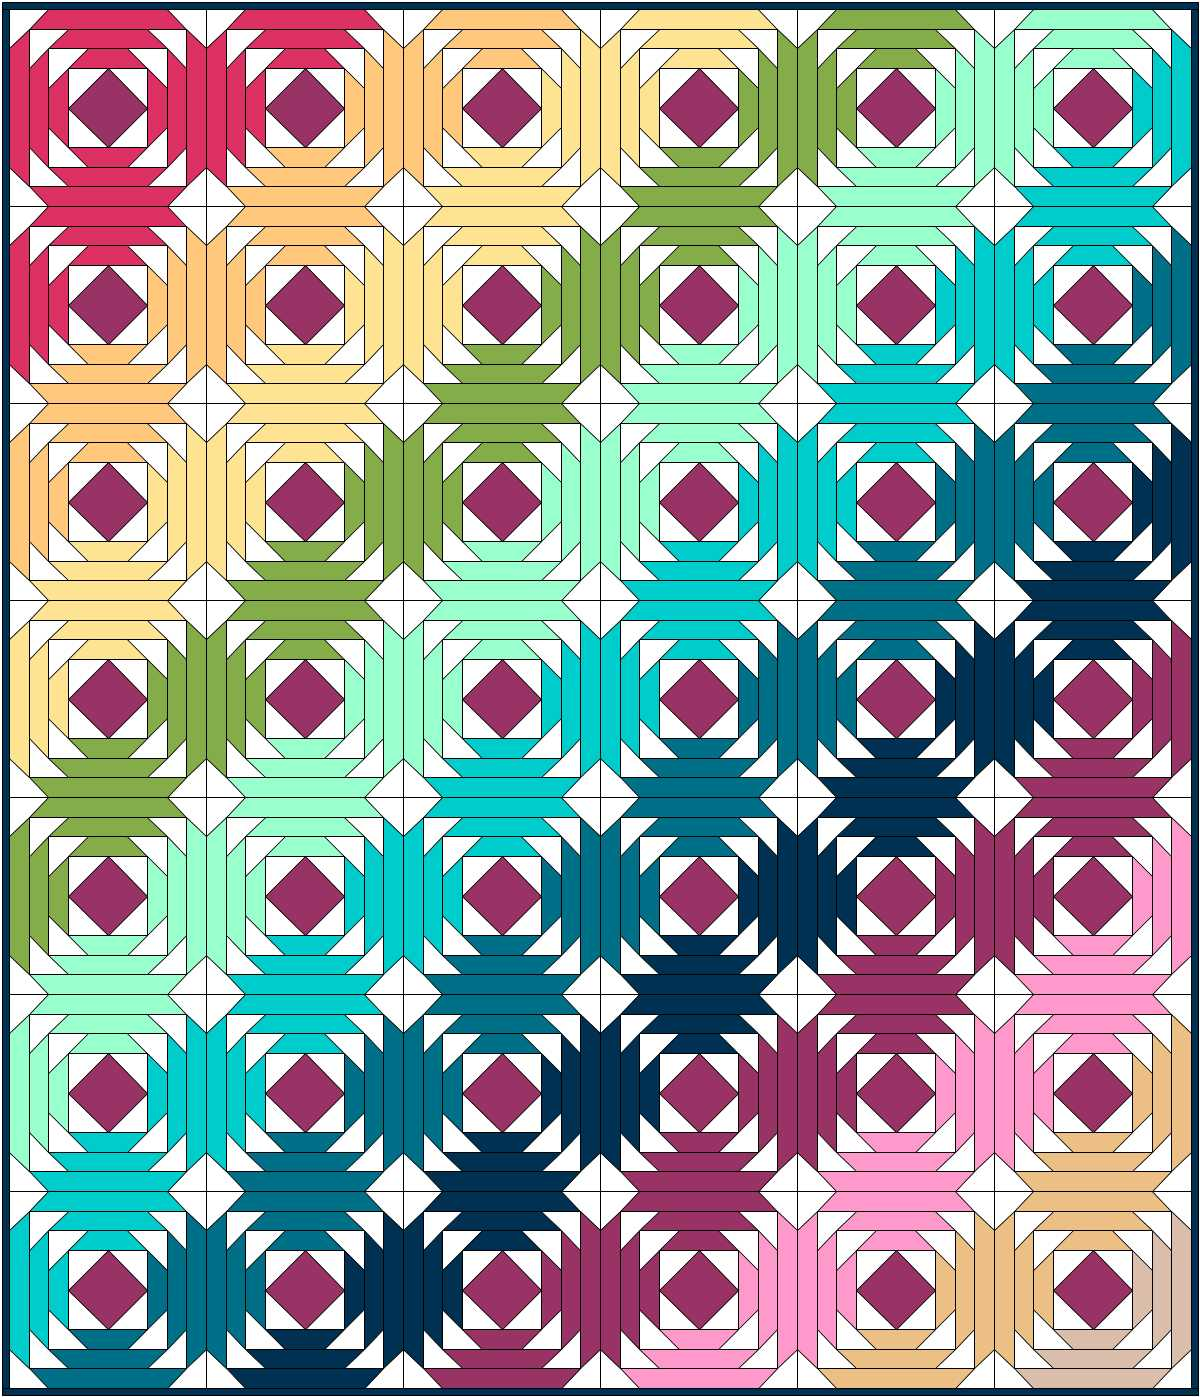 Hyacinth Quilt Designs Pineapple Quilt Block Tutorial